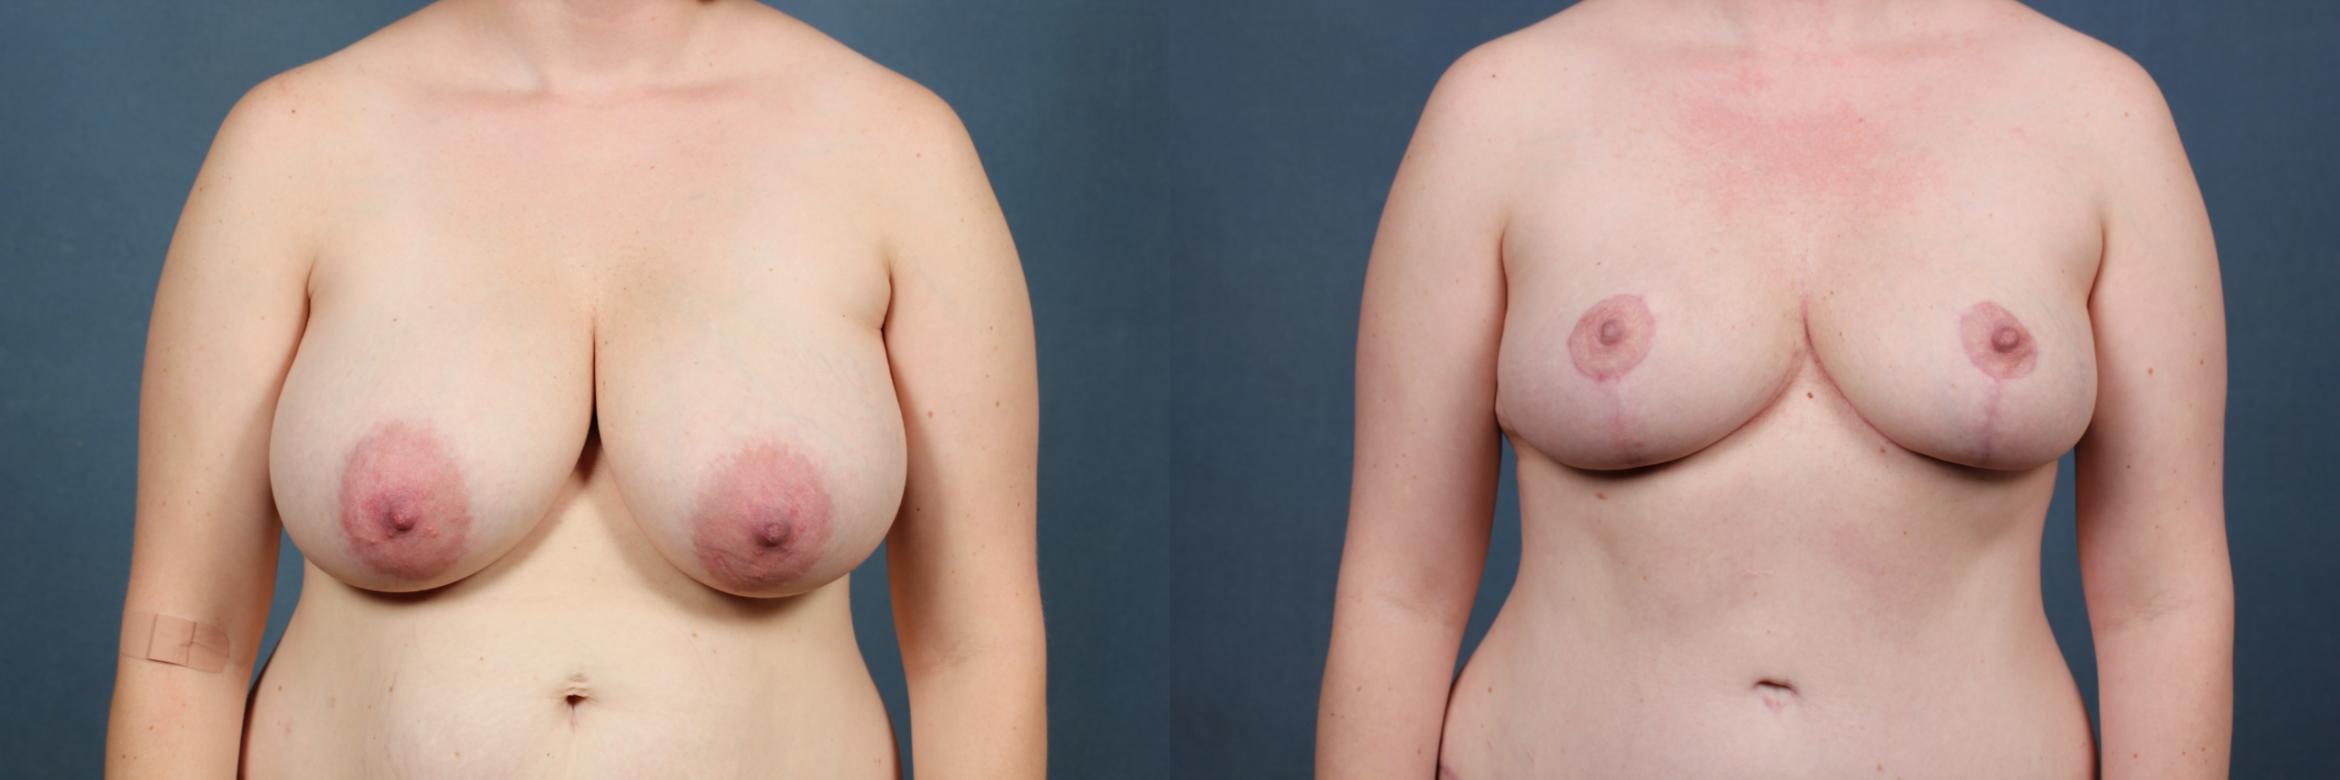 Reduction Case 445 Before & After View #1 | Louisville & Lexington, KY | CaloAesthetics® Plastic Surgery Center